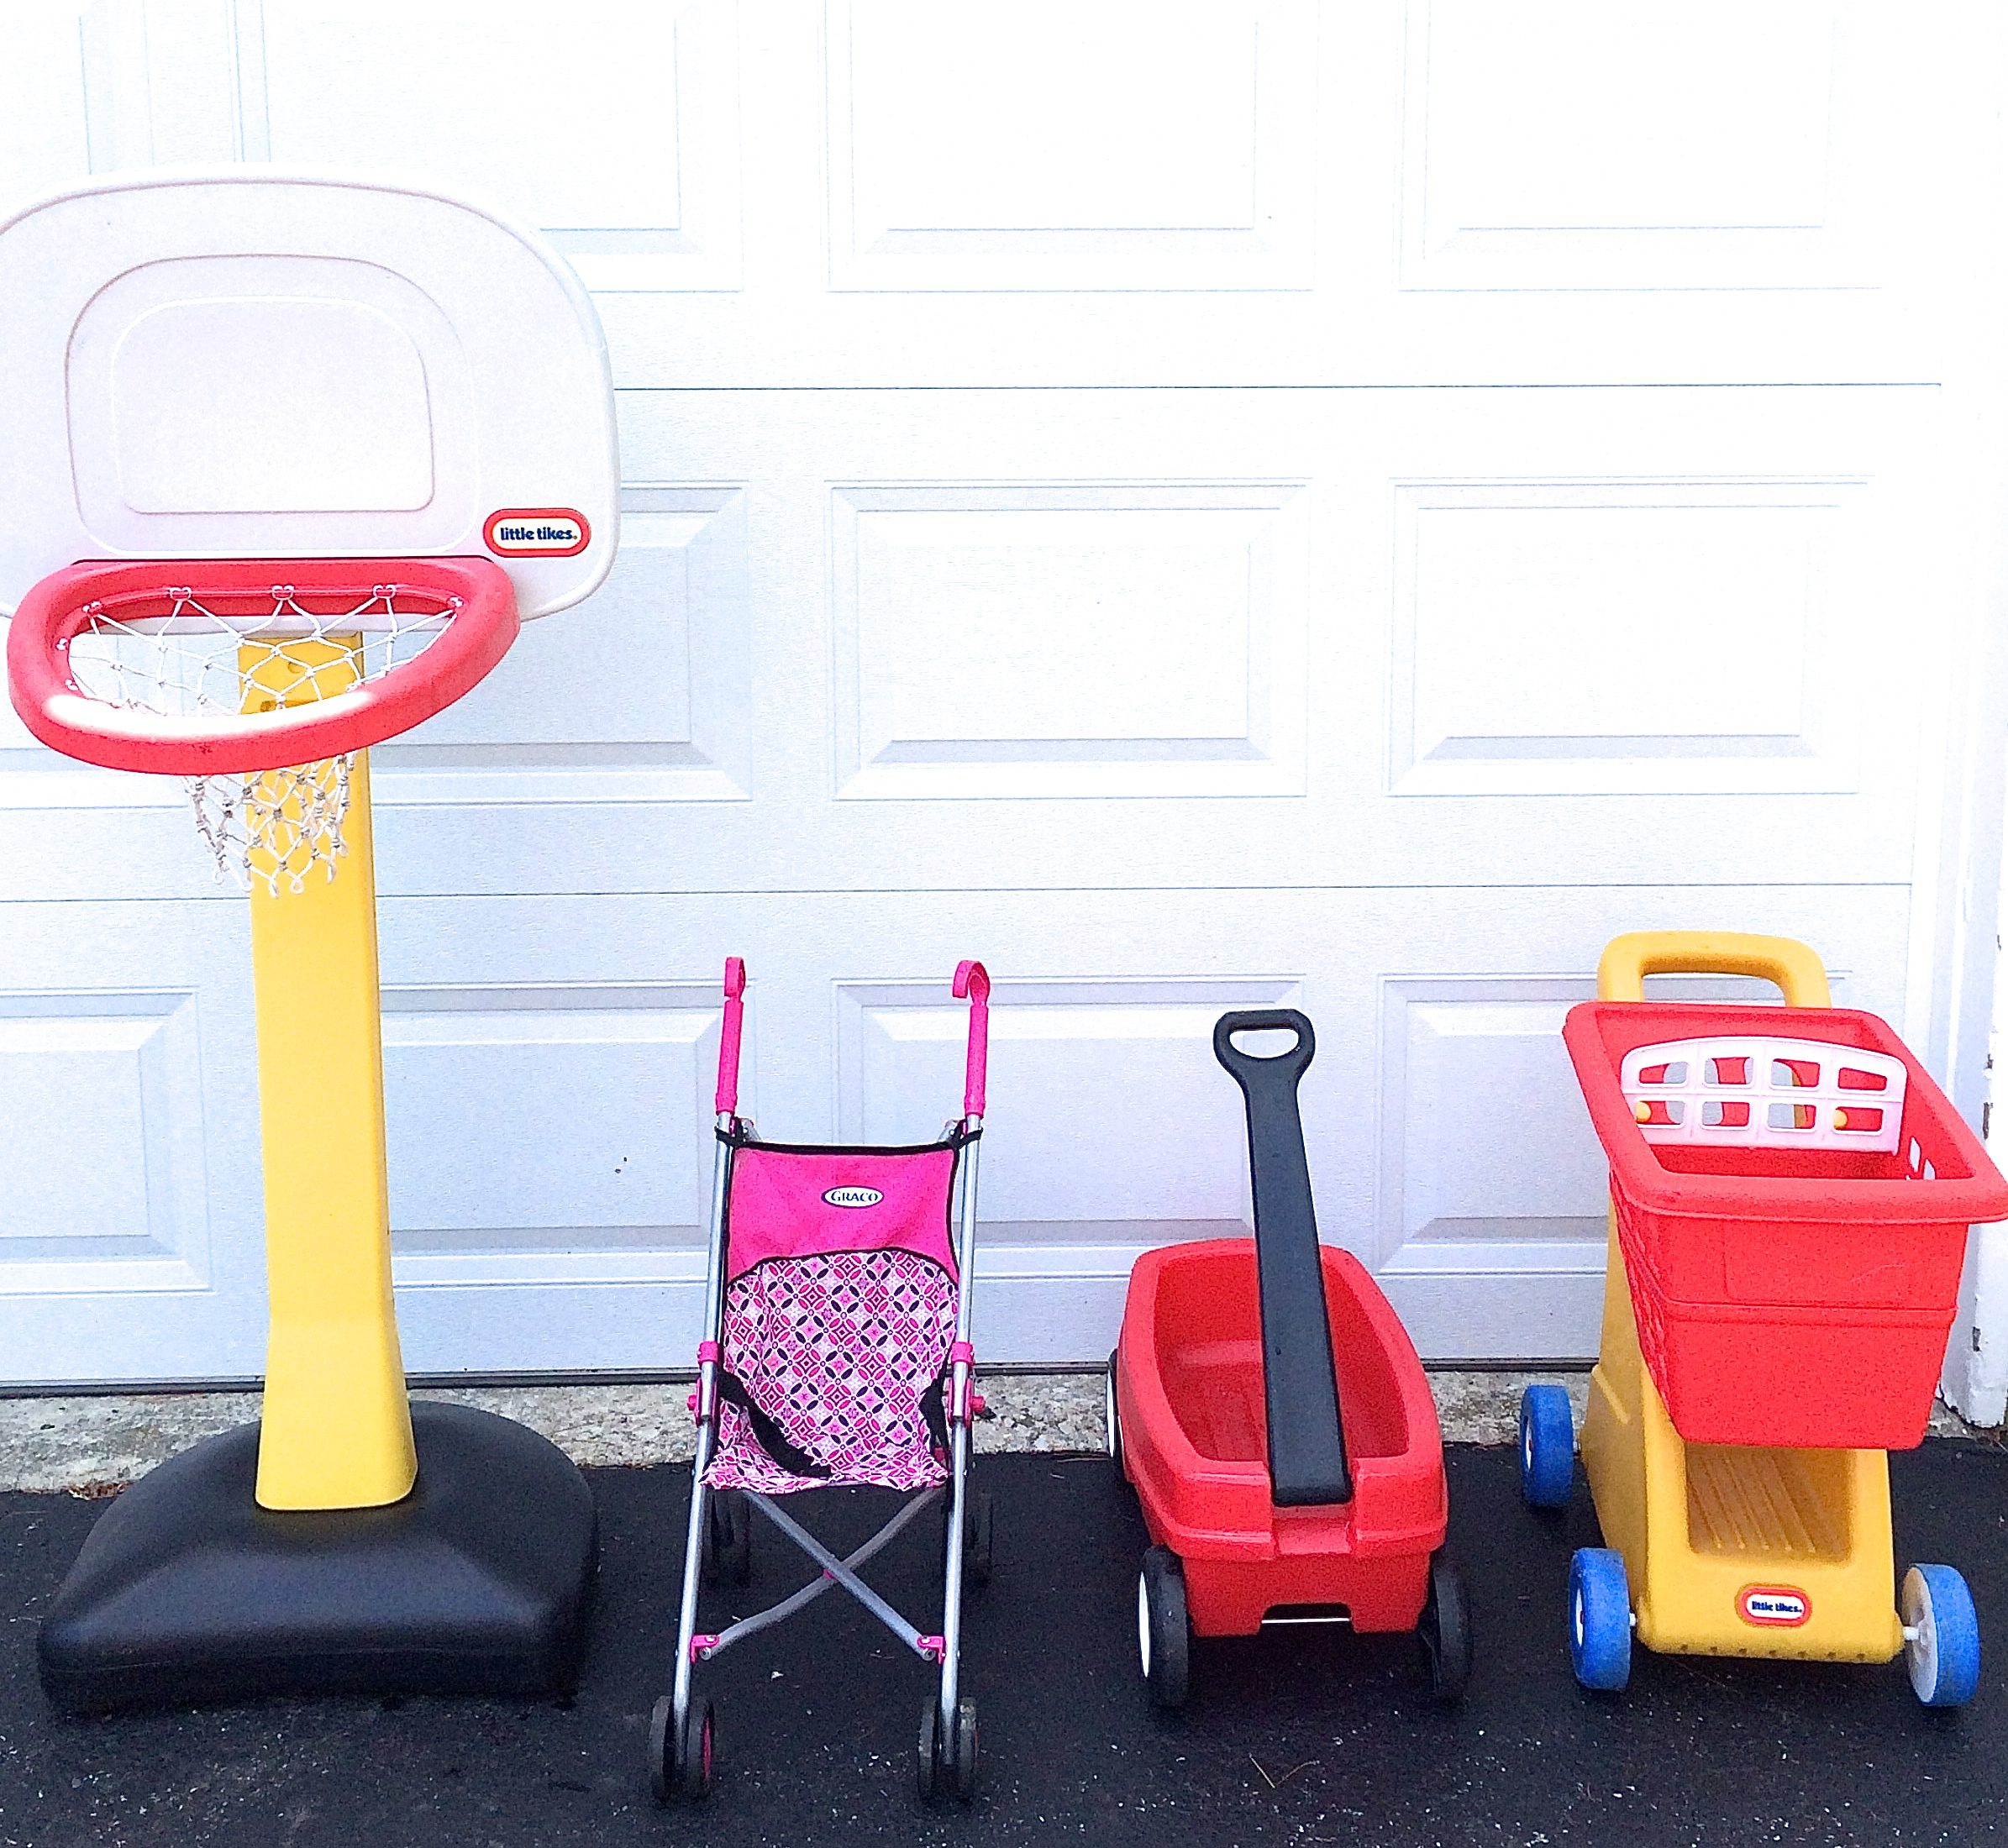 7 popular yard sale items that sell like crazy